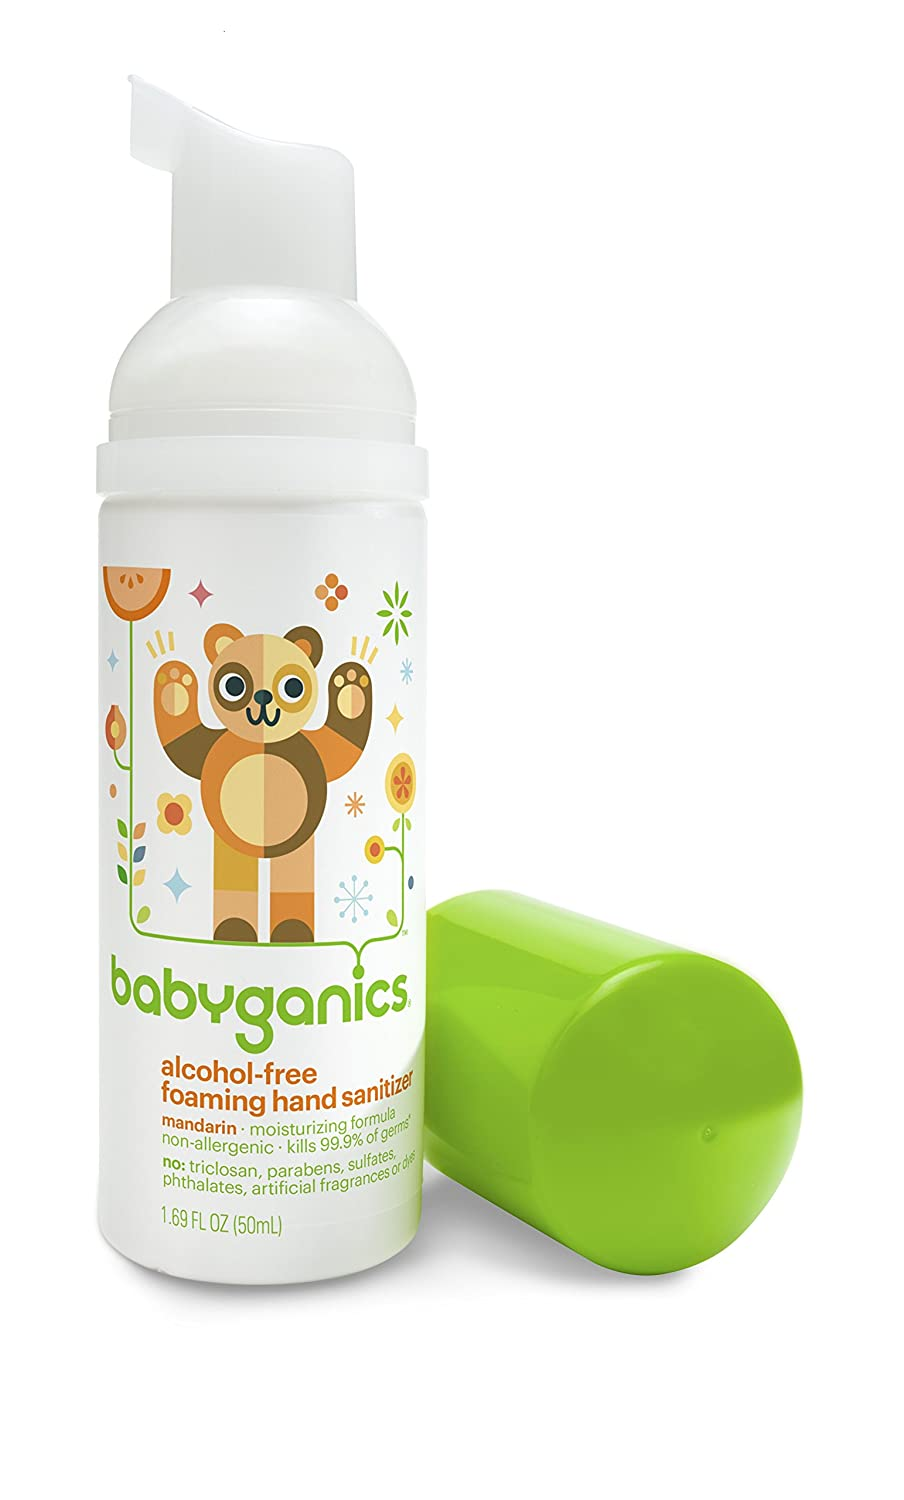 BabyGanics Alcohol Free Foaming Hand Sanitizer On-the-Go, Fragrance Free, Packaging May Vary babyganics 50ml 2016 10